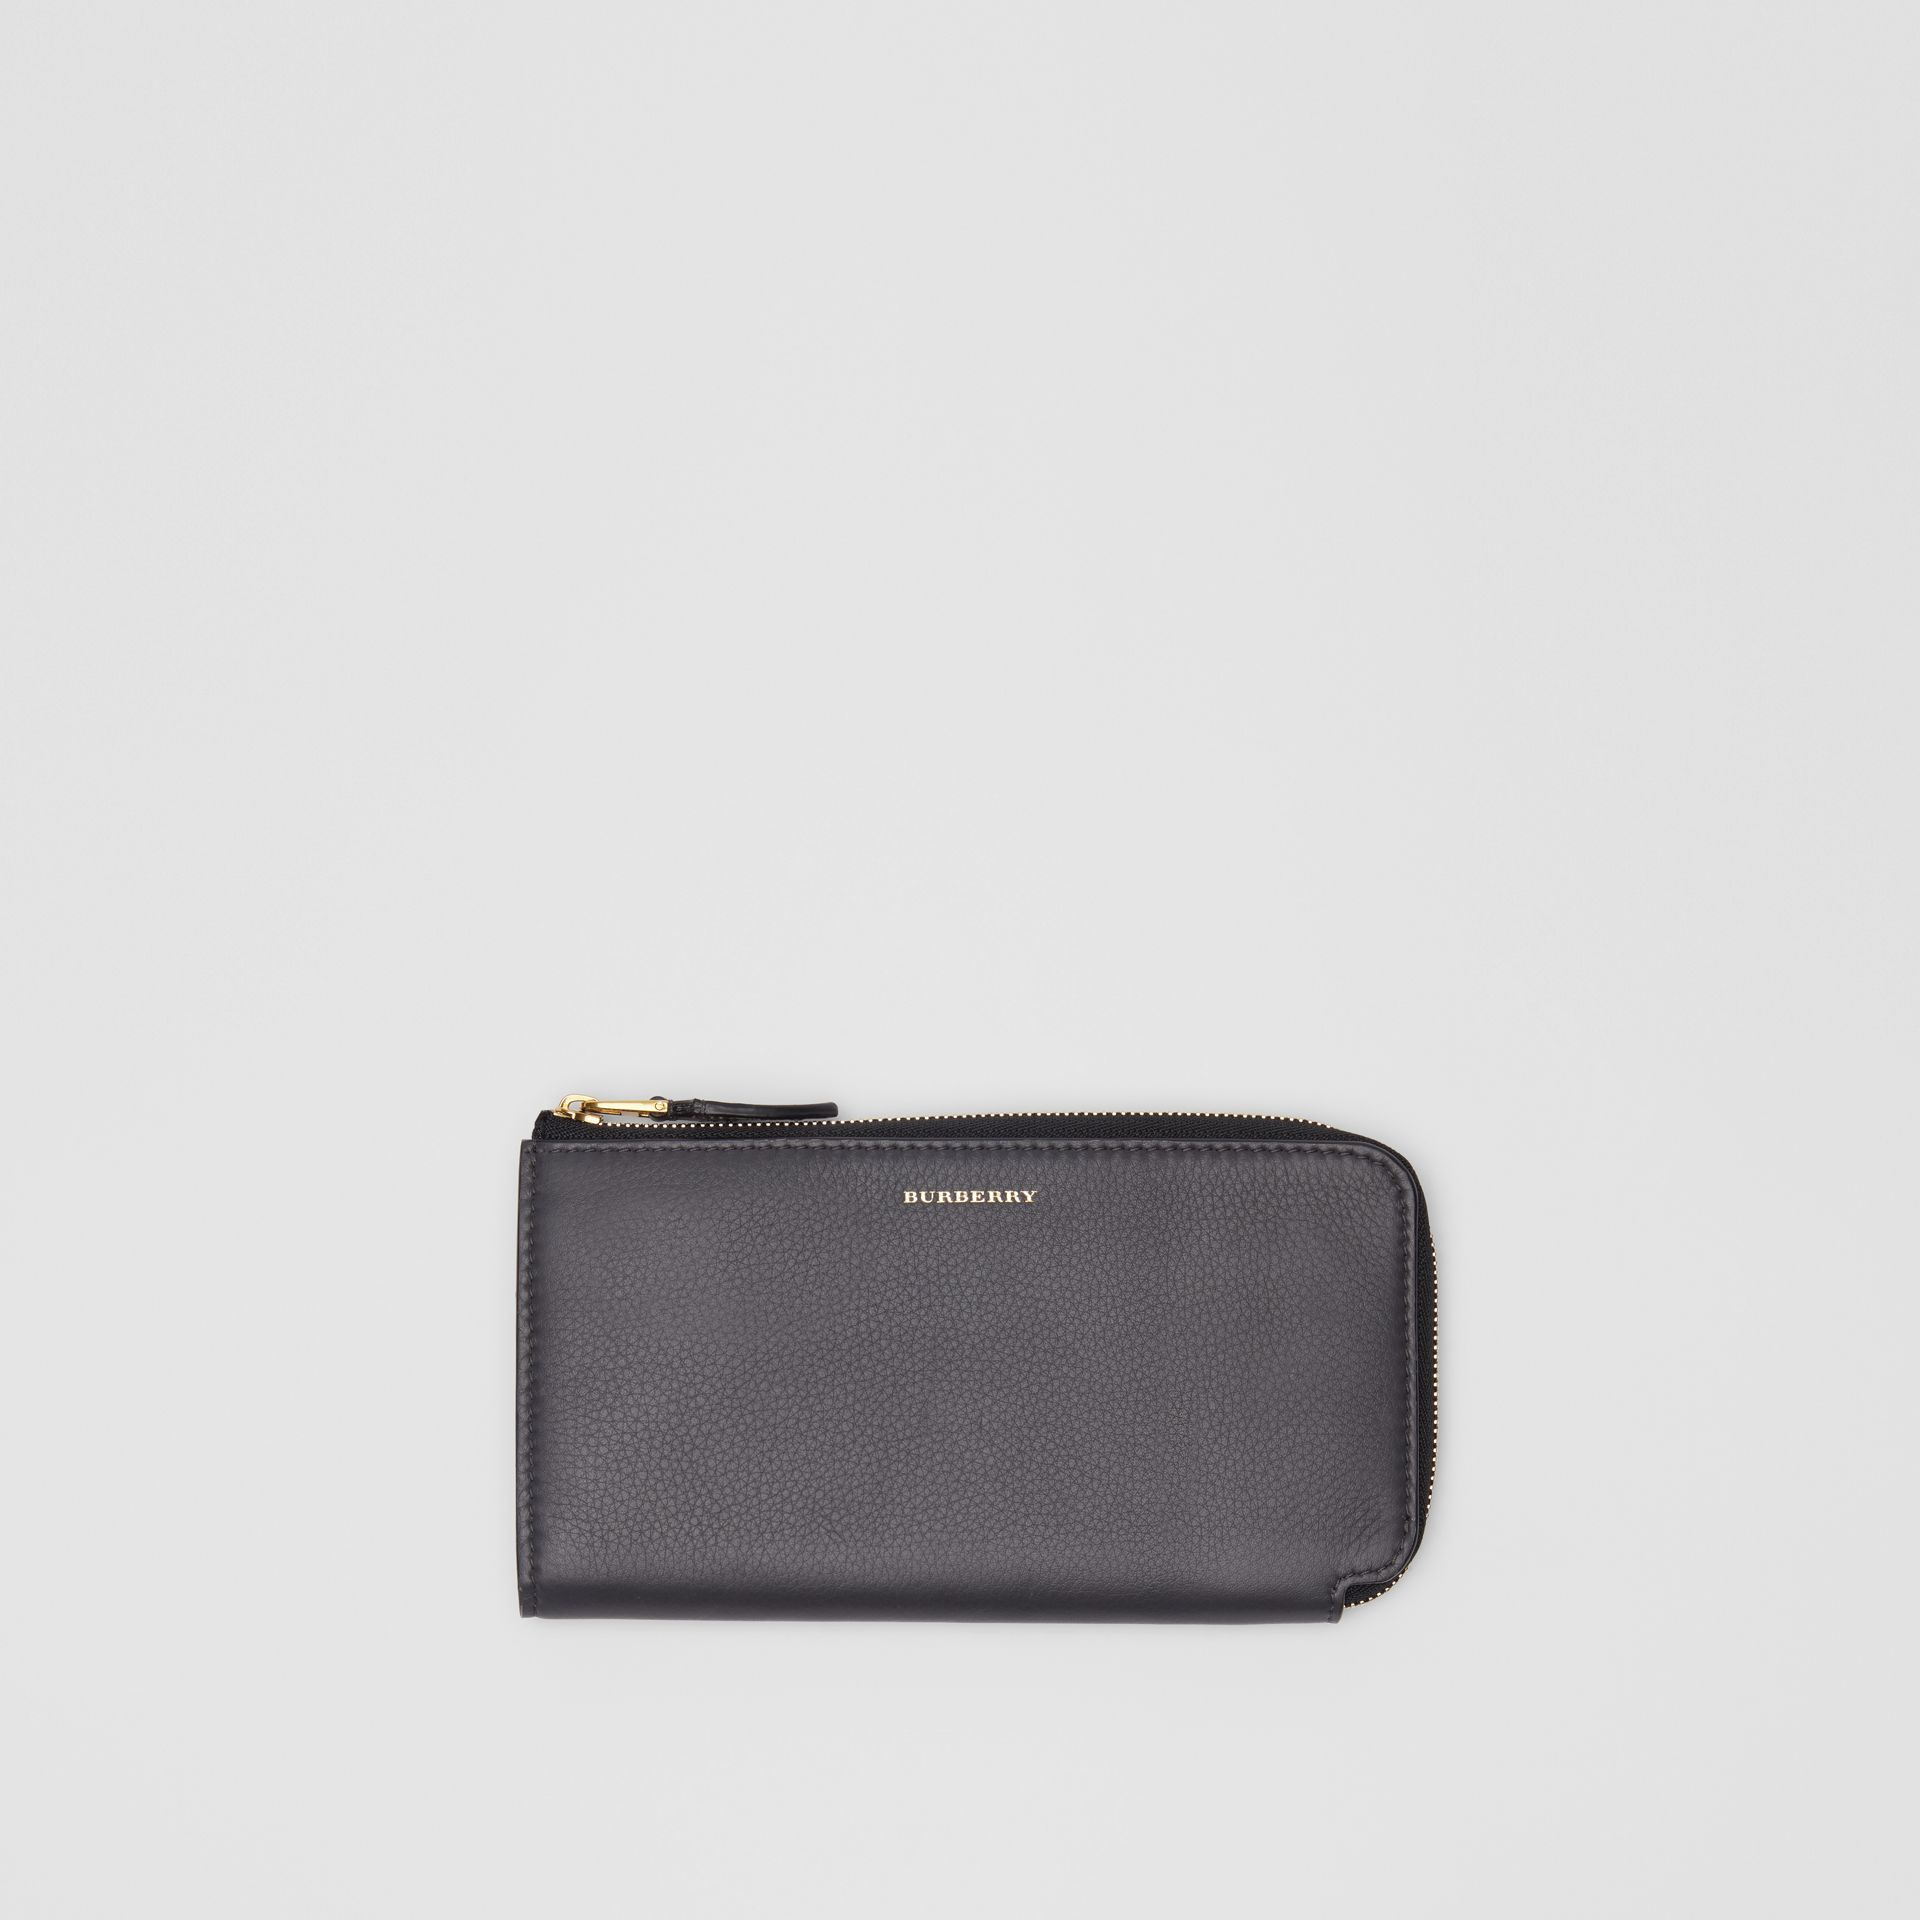 Two-tone Leather Ziparound Wallet and Coin Case in Charcoal Grey - Women | Burberry - gallery image 0